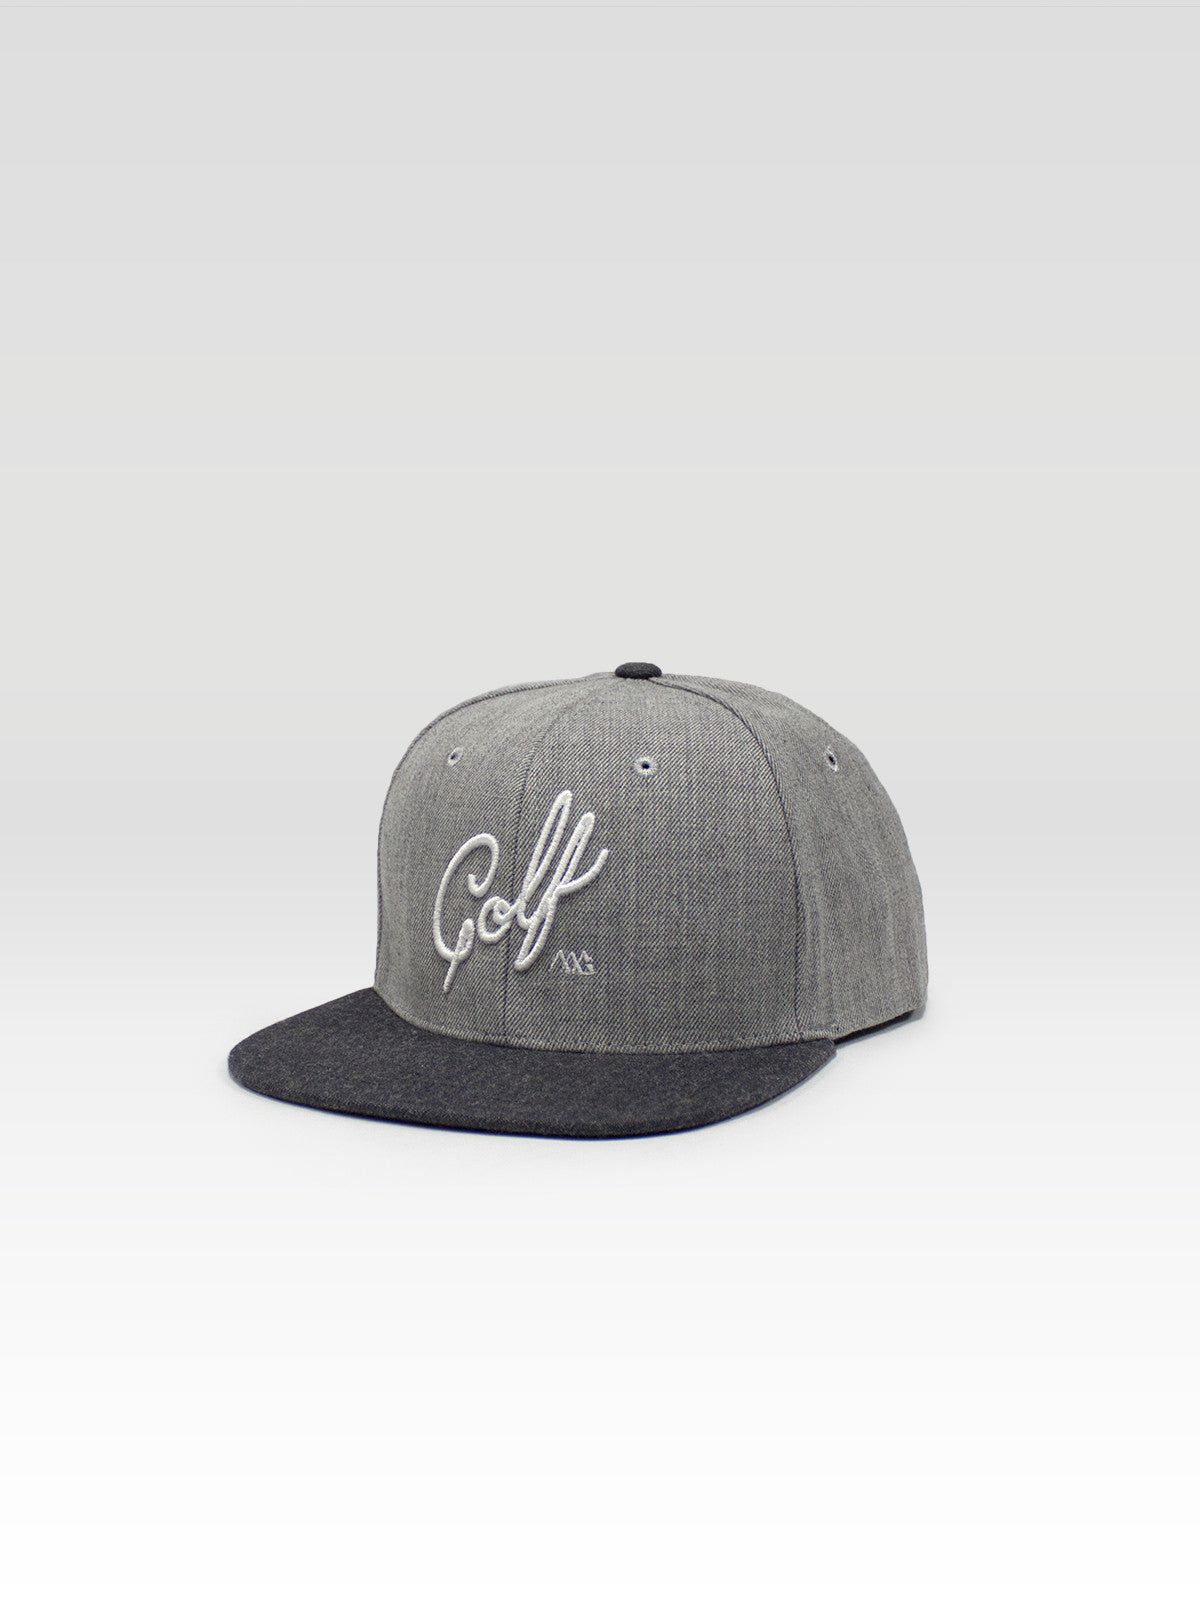 8db6c7ded10 Matte Grey Men s Script Snapback Light Grey   Dark Grey Heather ...